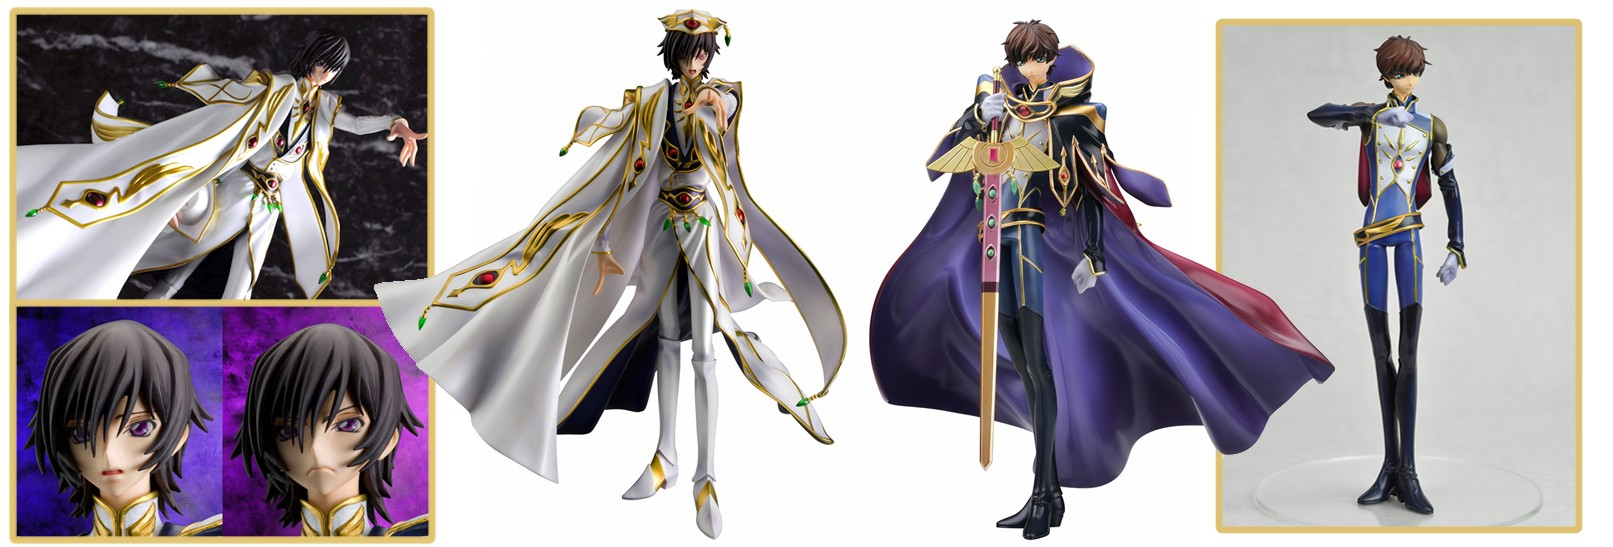 MegaHouse – Code Geass: Lelouch of the Rebellion R2: Lelouch Lamperouge & Kururugi Suzaku